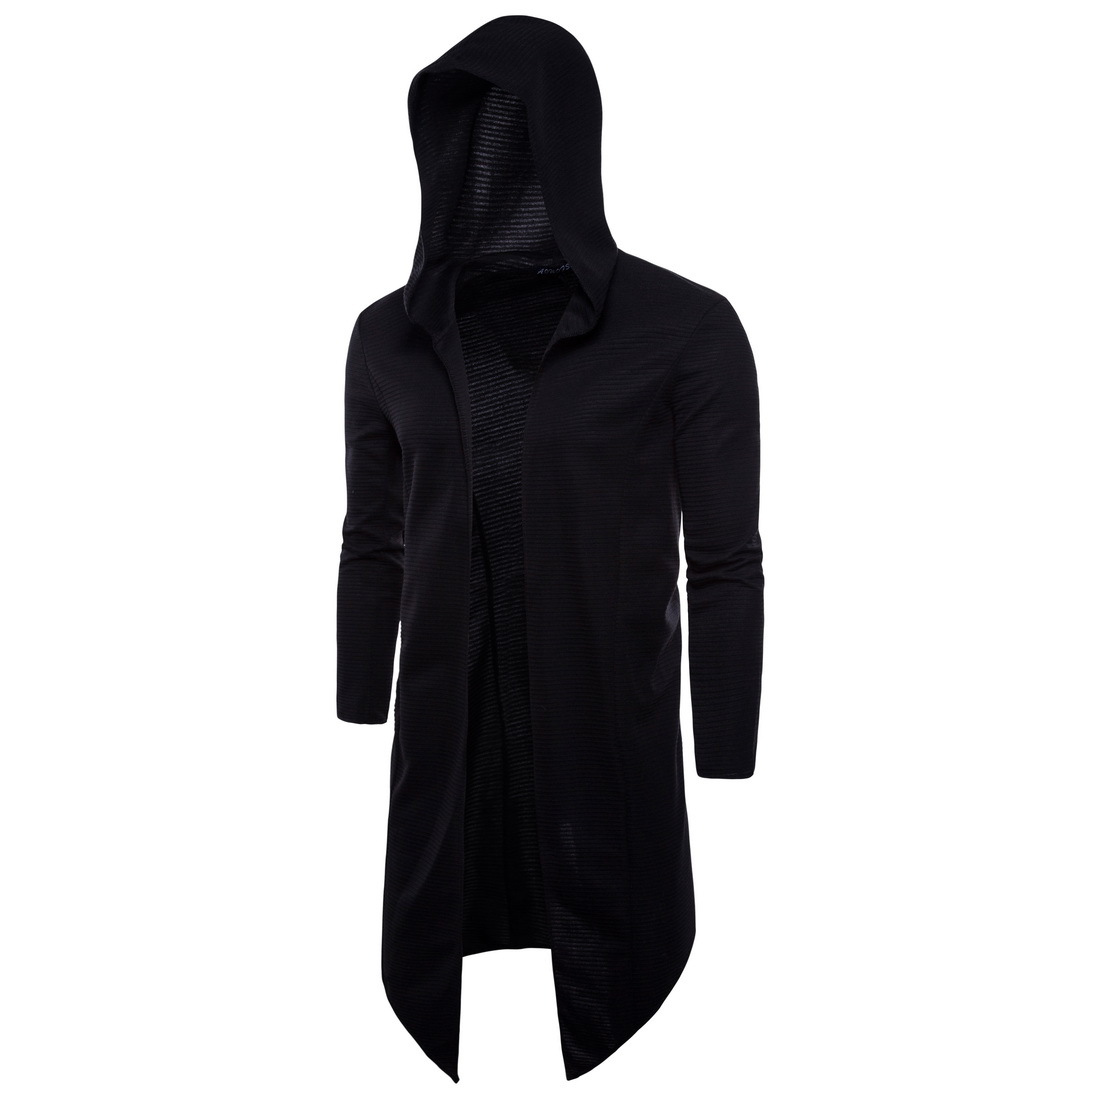 New Men Cardigan Coat Sweaters Hooded Cloak Long Windbreaker Cloak Coat Knitted Sweater Big Size 5XL Cardigans Outerwear